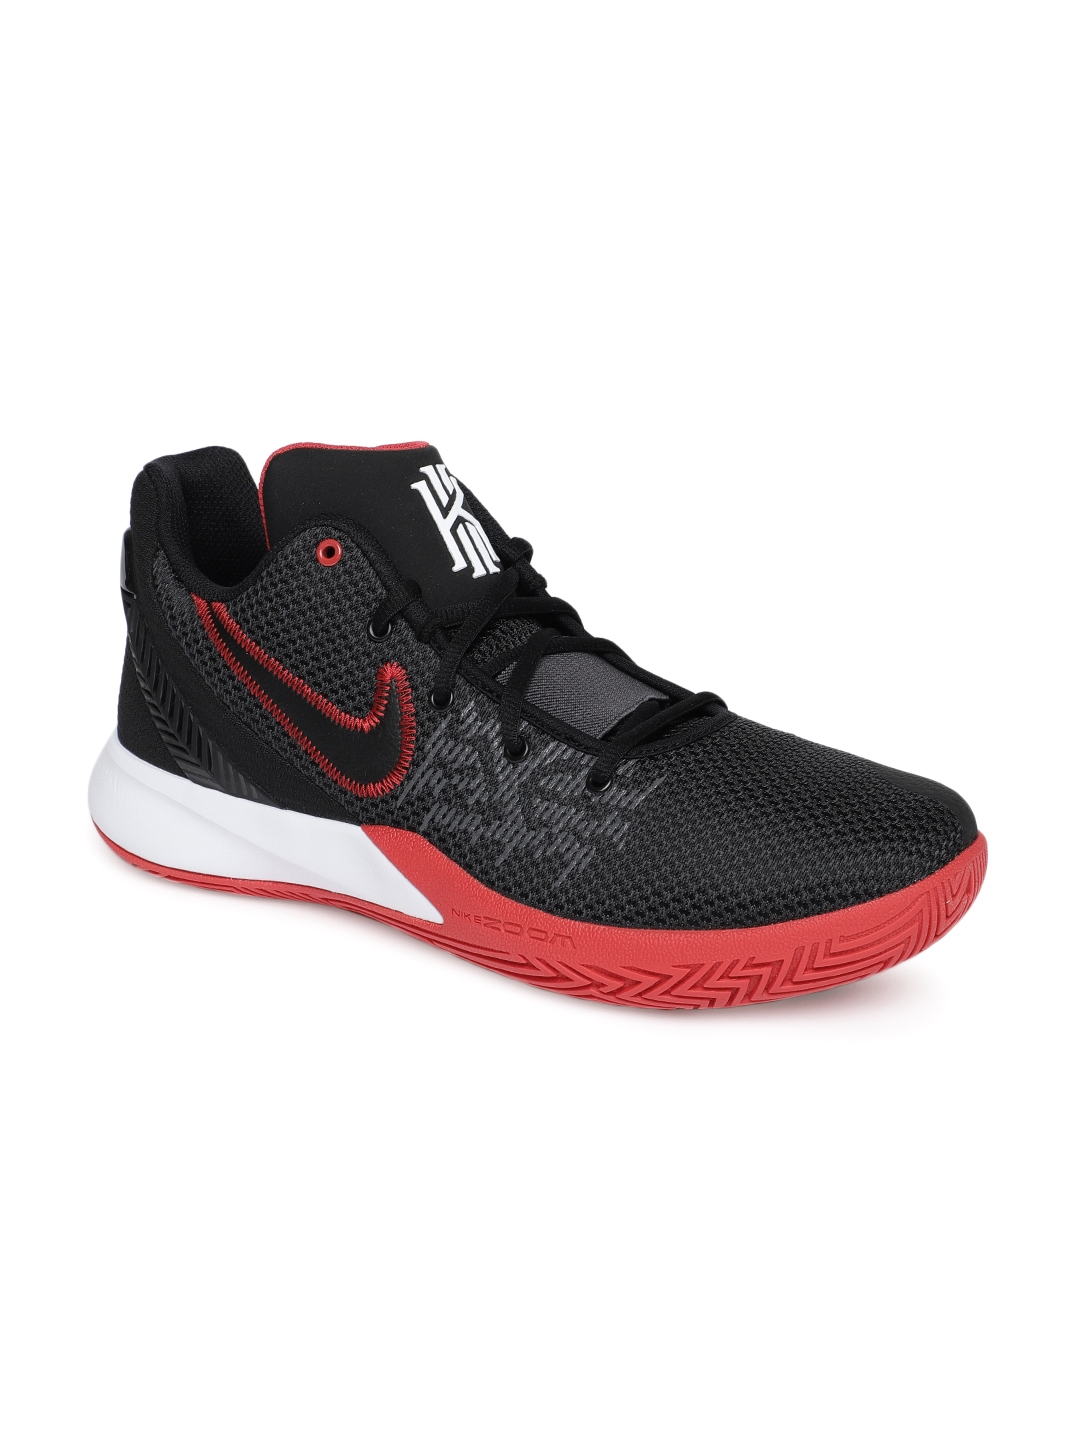 super popular 567f0 f08f8 Nike Men Black Kyrie Flytrap II Basketball Shoes